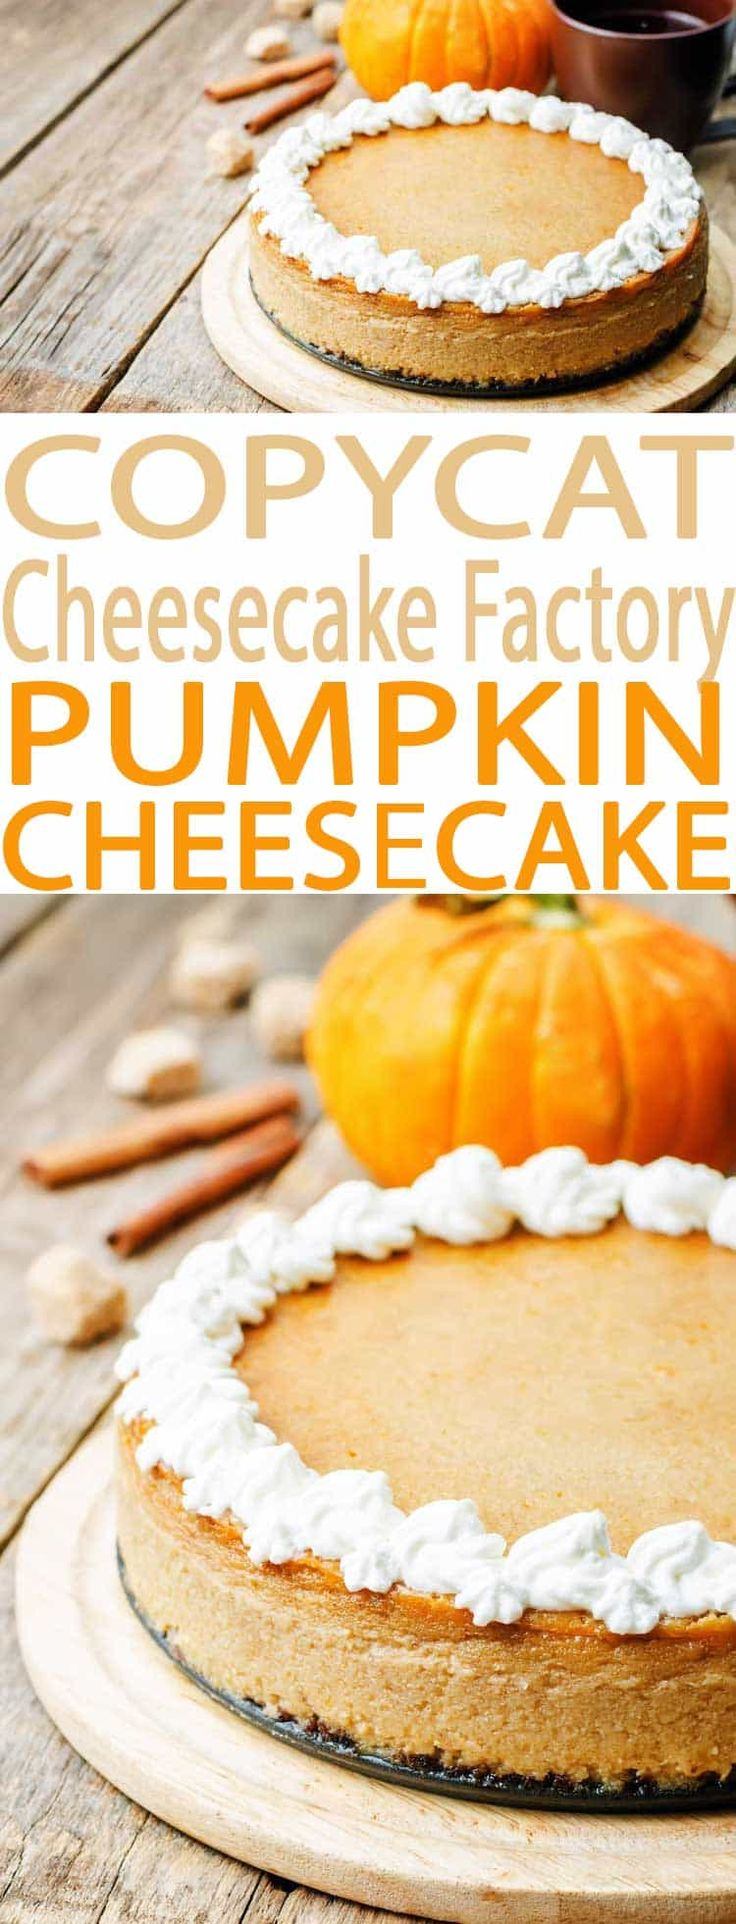 Pumpkin Cheesecake: A Cheesecake Factory menu favorite, this Copycat Cheesecake Factory Pumpkin Cheesecake recipe is easy to make at home. The best pumpkin pie cheesecake!